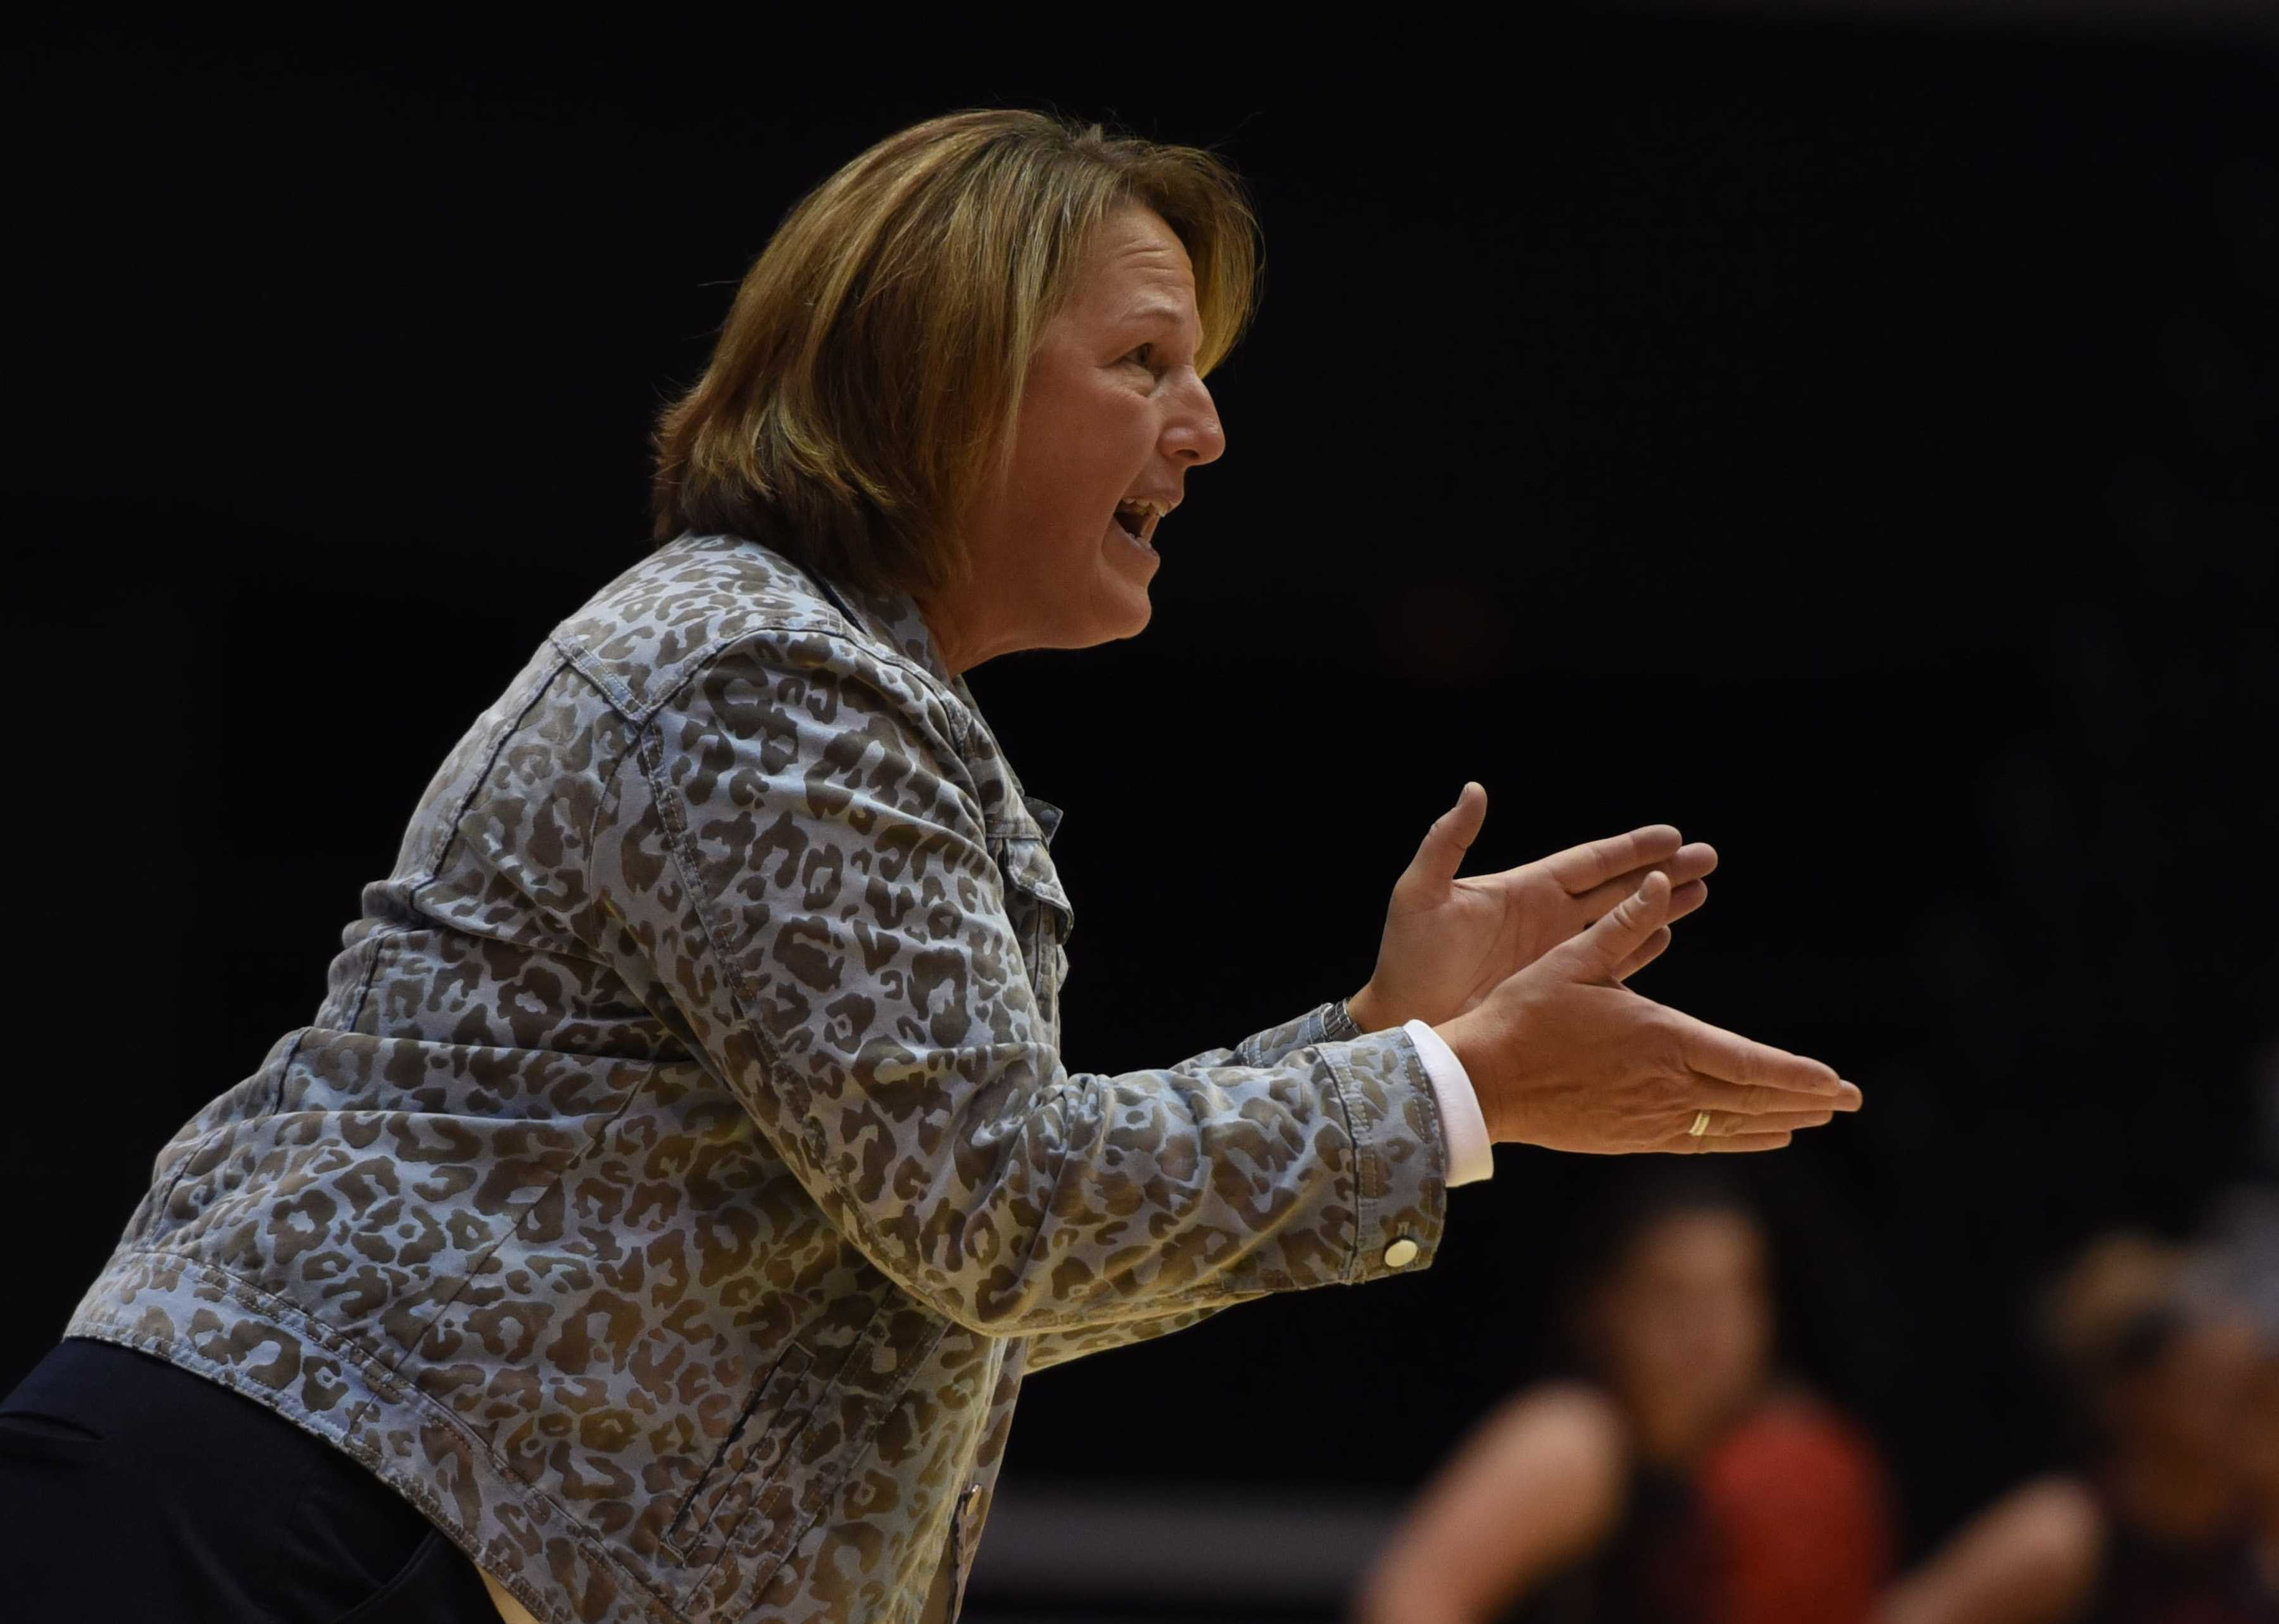 SIU coach Cindy Stein encourages the Salukis during the team's 77-70 win Friday, Dec. 9, 2016, against Southeast Missouri at SIU Arena. (Bill Lukitsch | @lukitsbill)